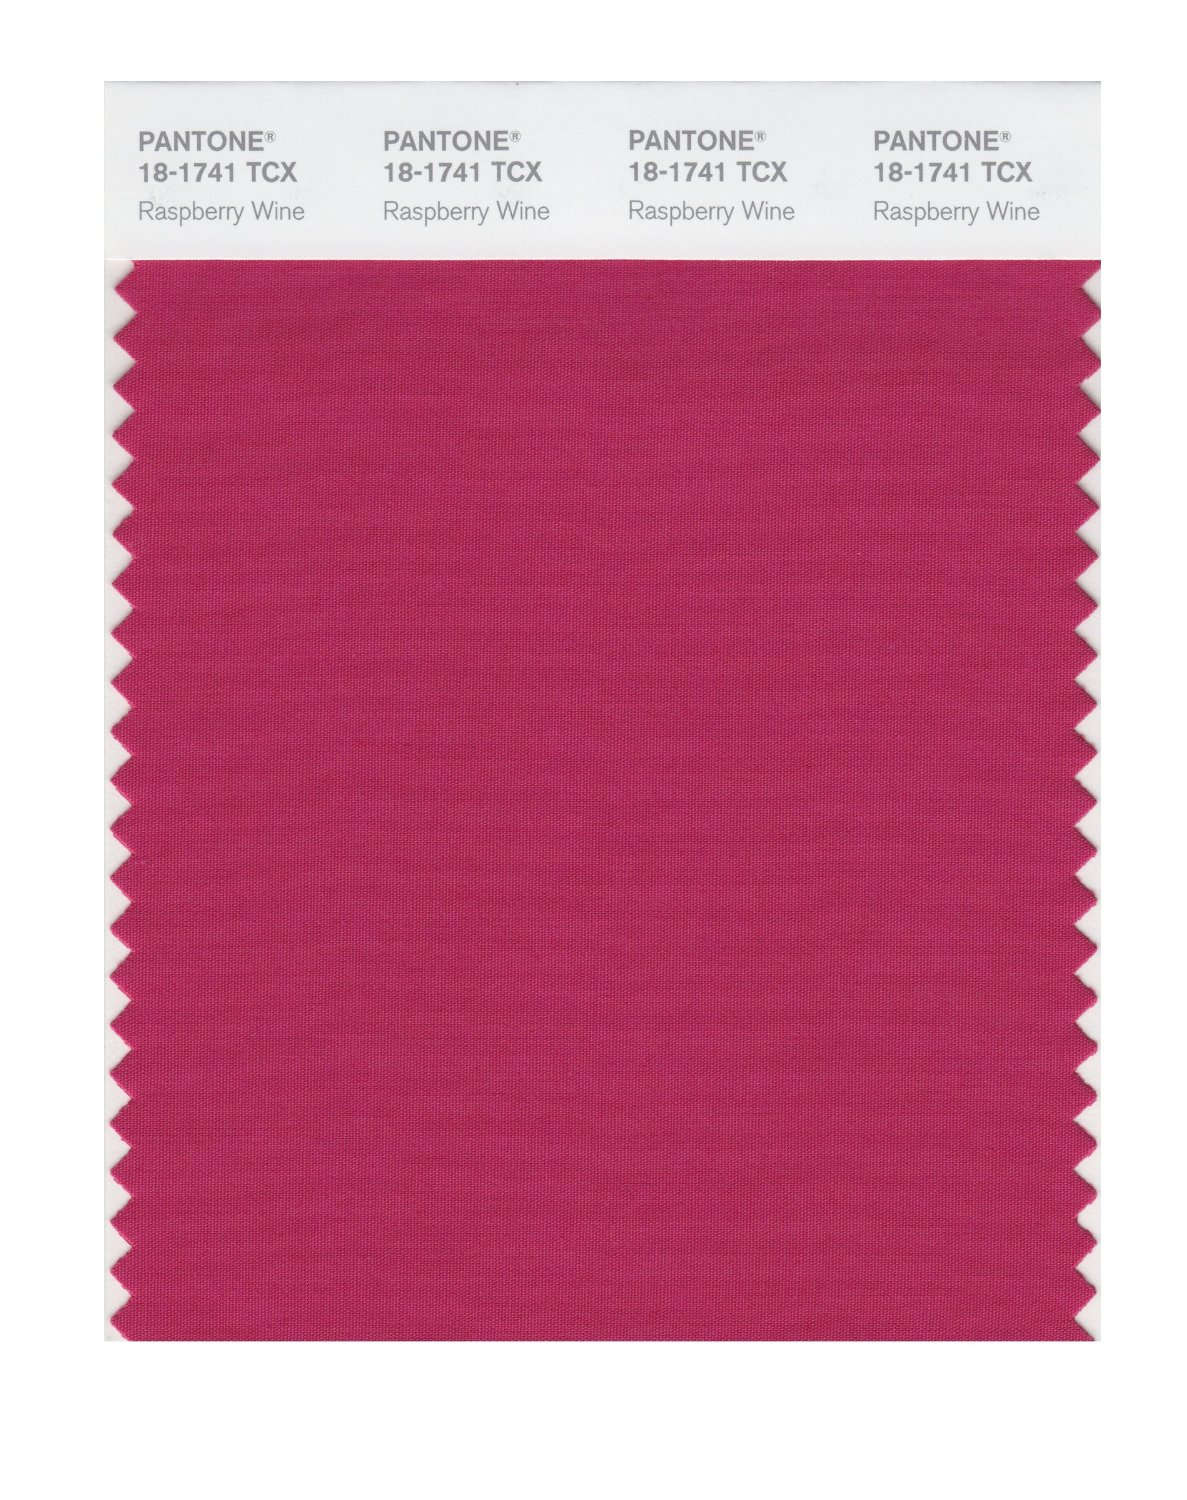 Pantone Smart Swatch 18-1741 Raspberry Wine